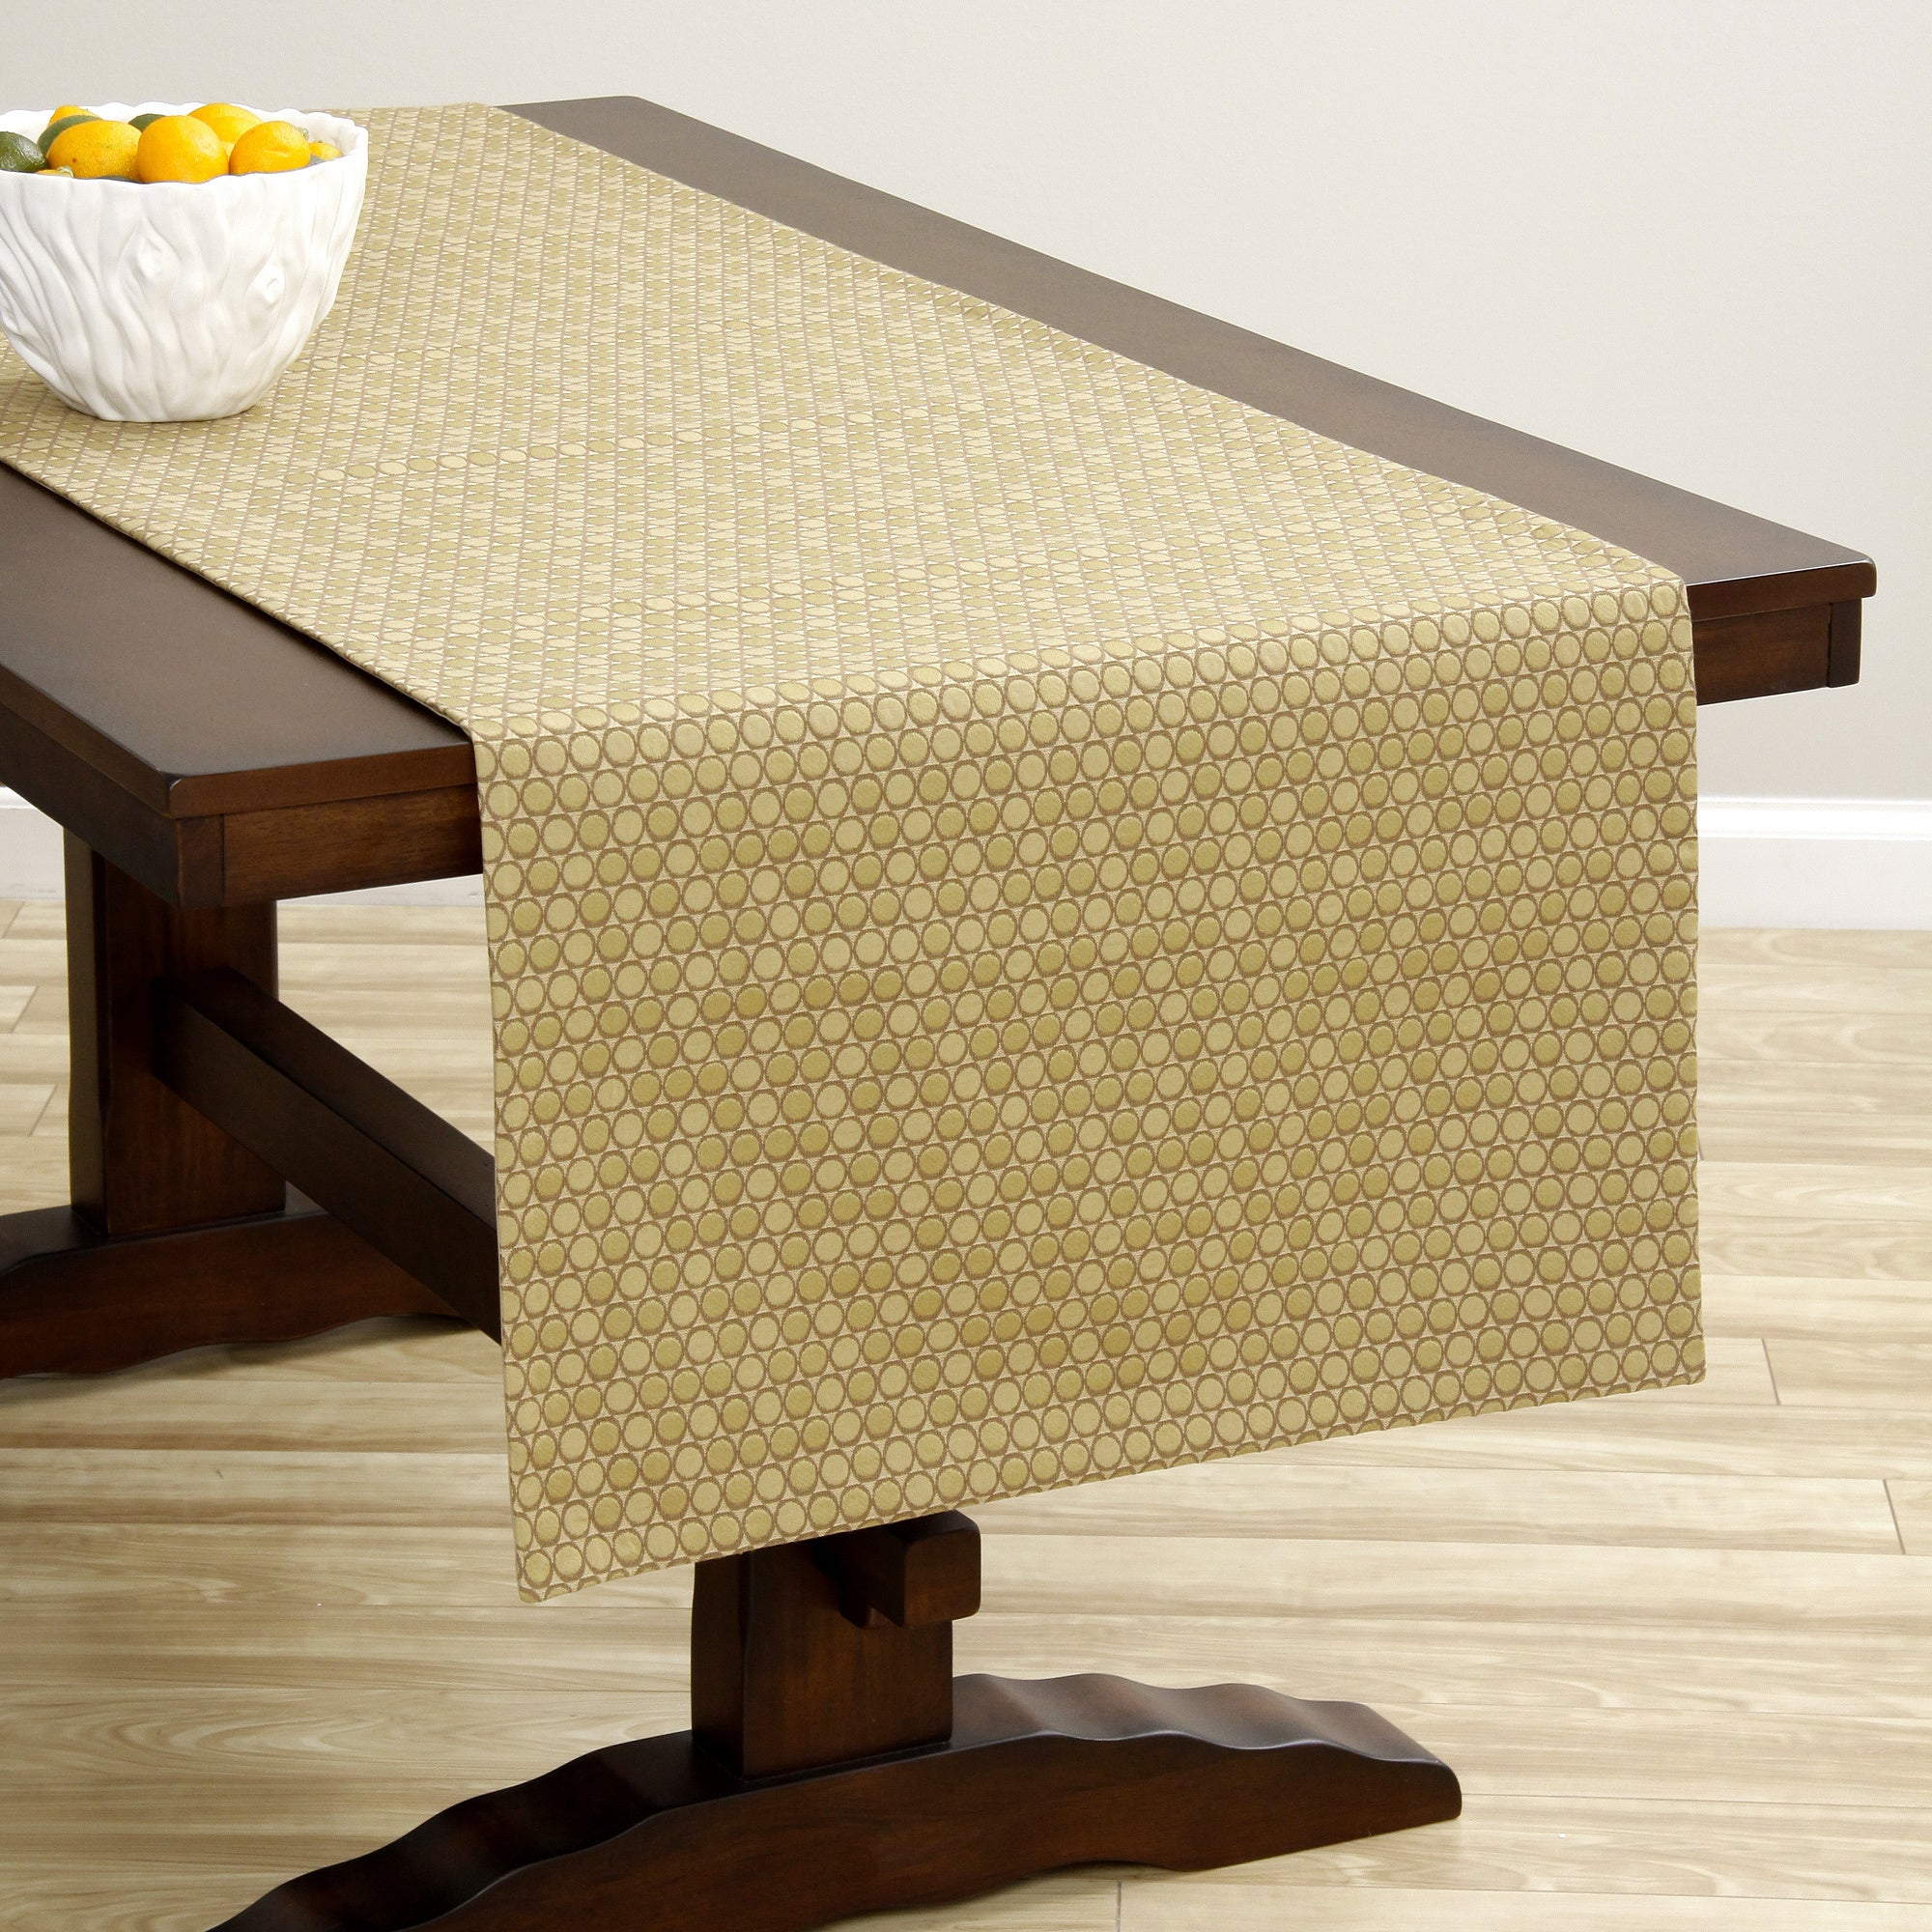 Etonnant Shop Corona Decor Extra Wide Gold Dot Italian Woven Table Runner   On Sale    Free Shipping Today   Overstock   8809841